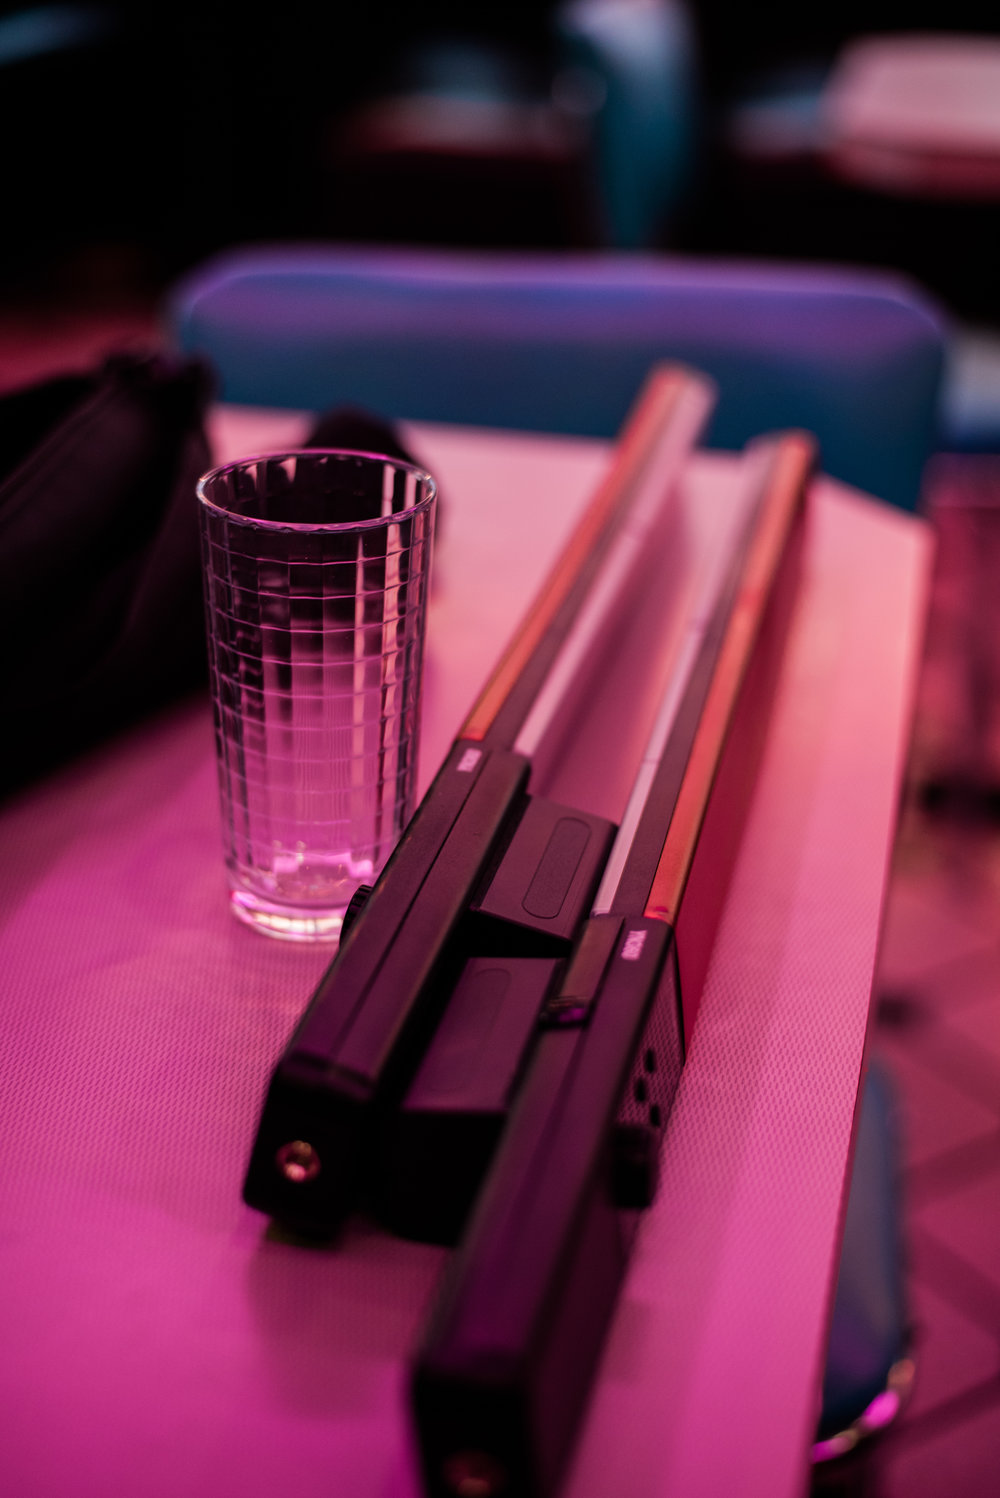 A look at my tools: A cup from the Youth Ranch for refracting the light, and two Yongnuo YN360 LED Light Wand. A lot of the pink light was coming from the neon lights in the diner, but we added a little more blue using the wands.